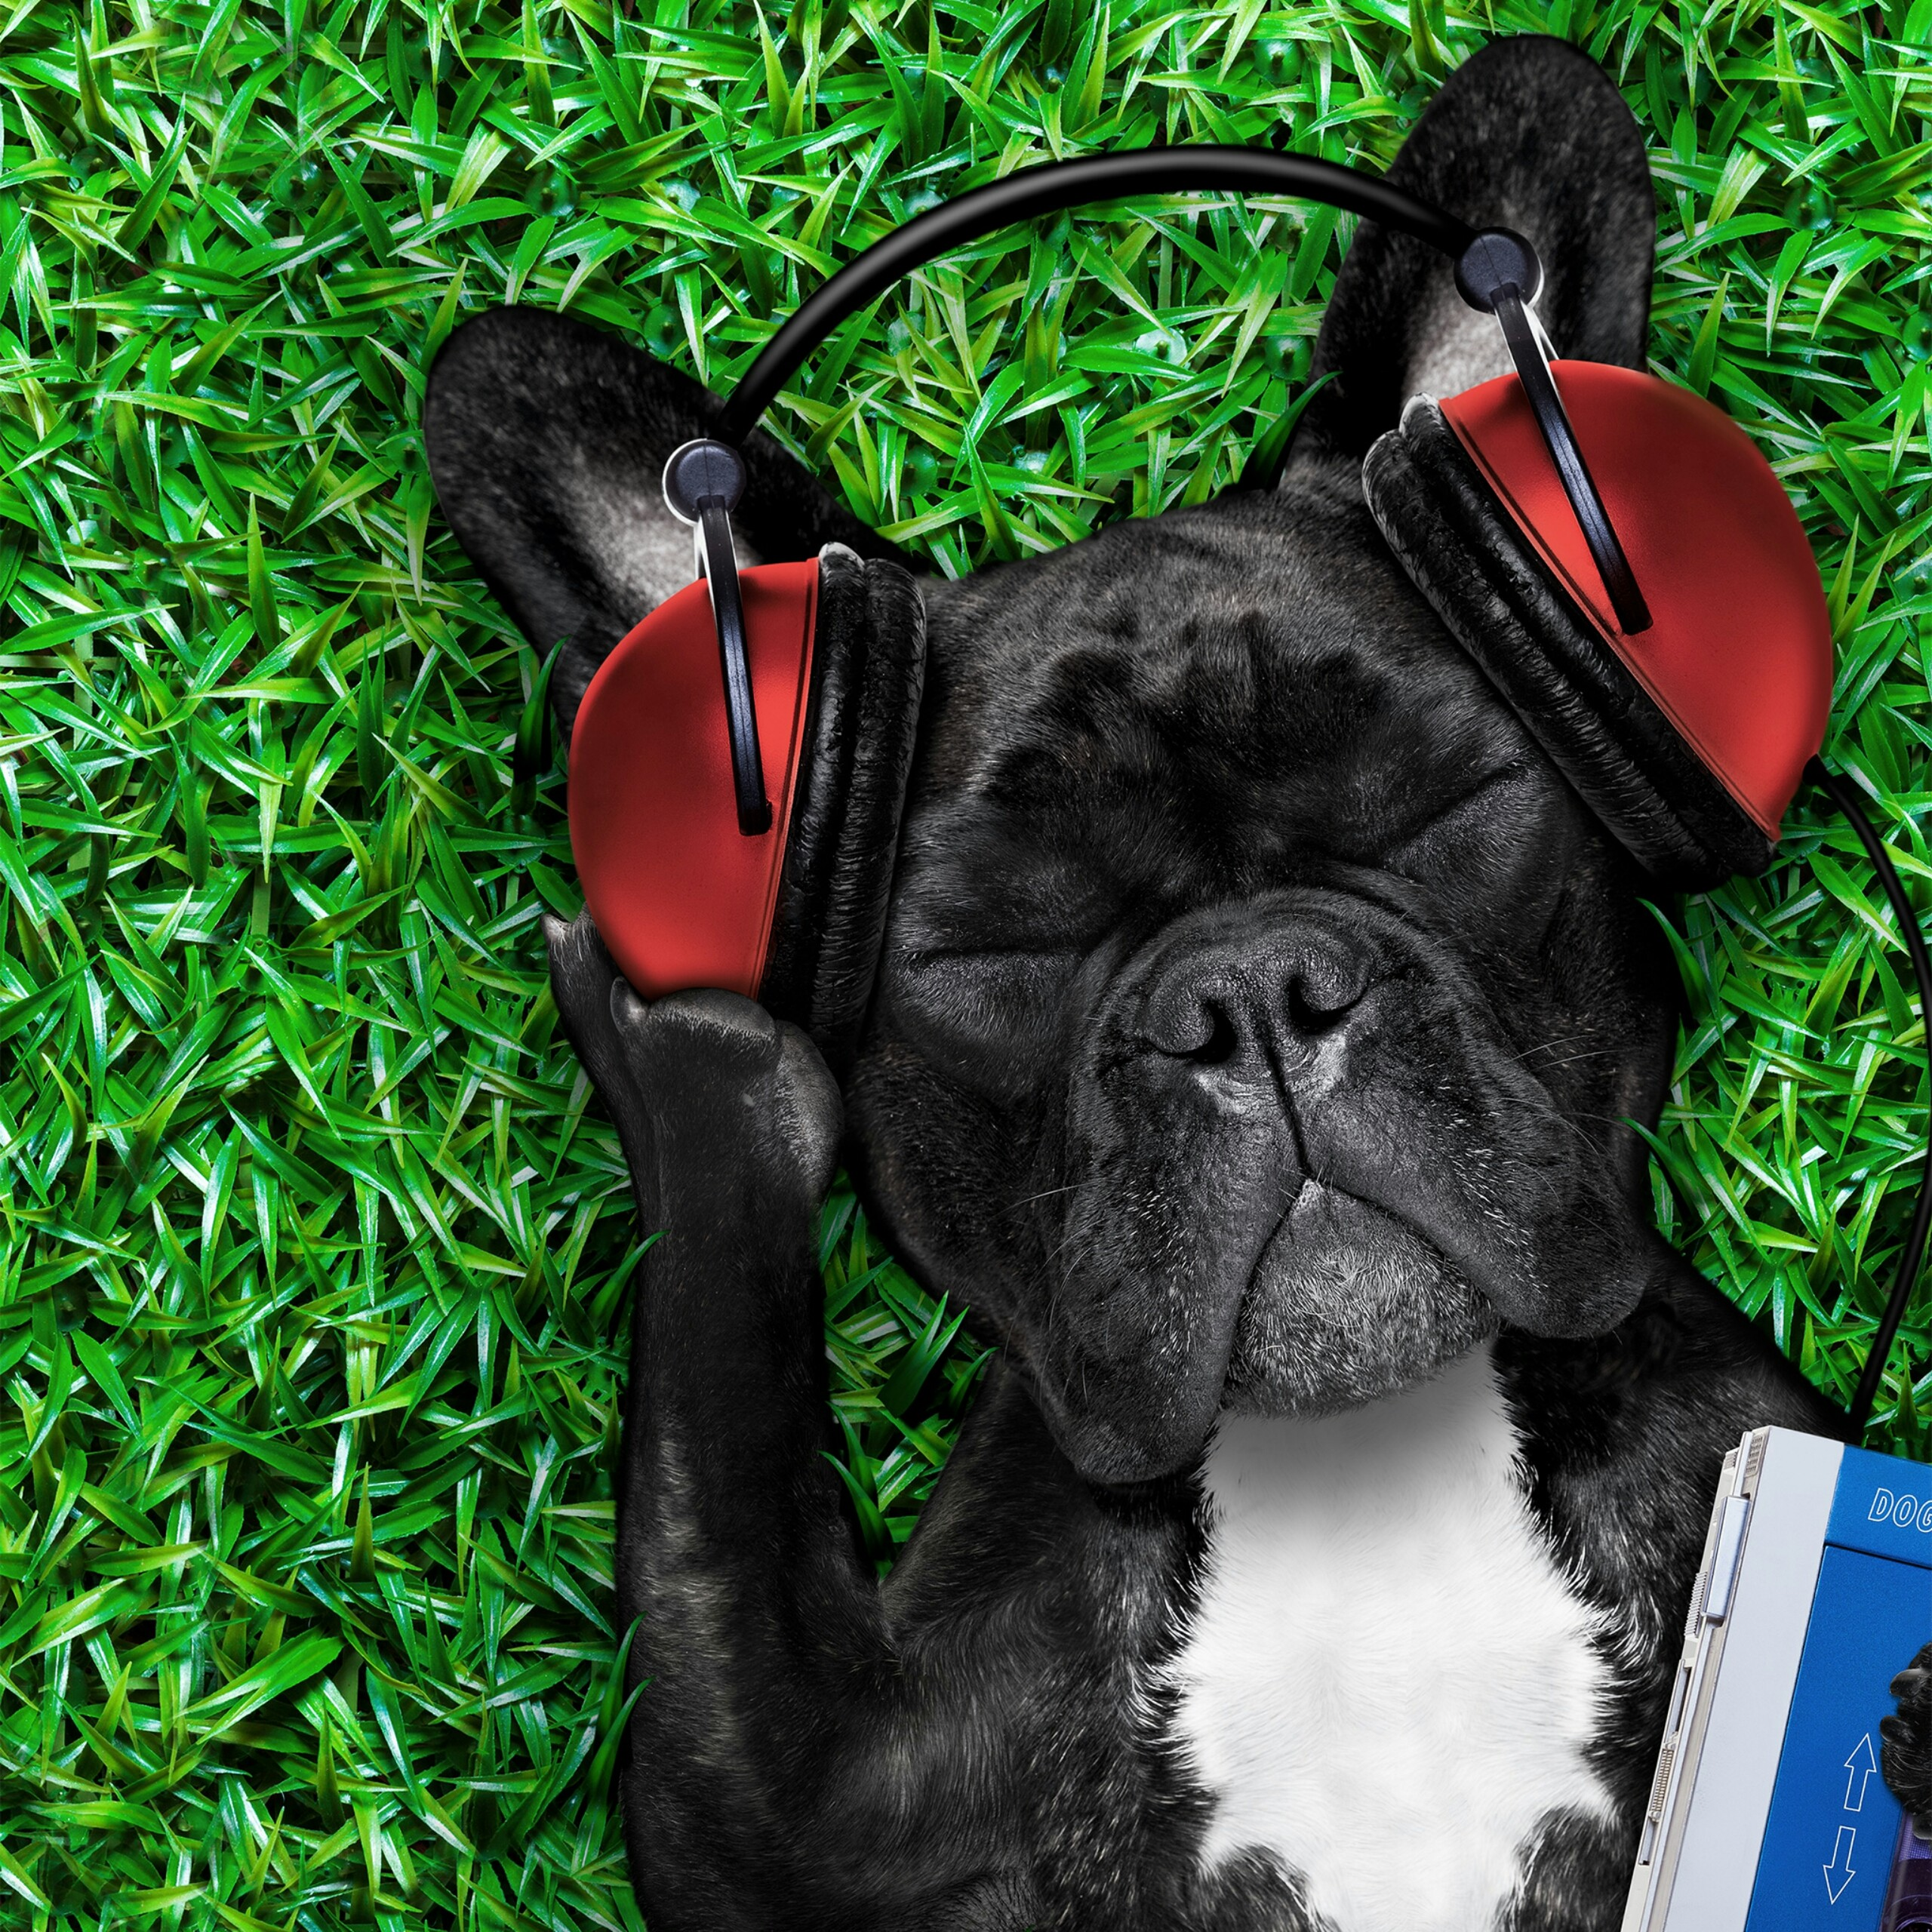 a cool dog listening to music animals qhd wallpaper